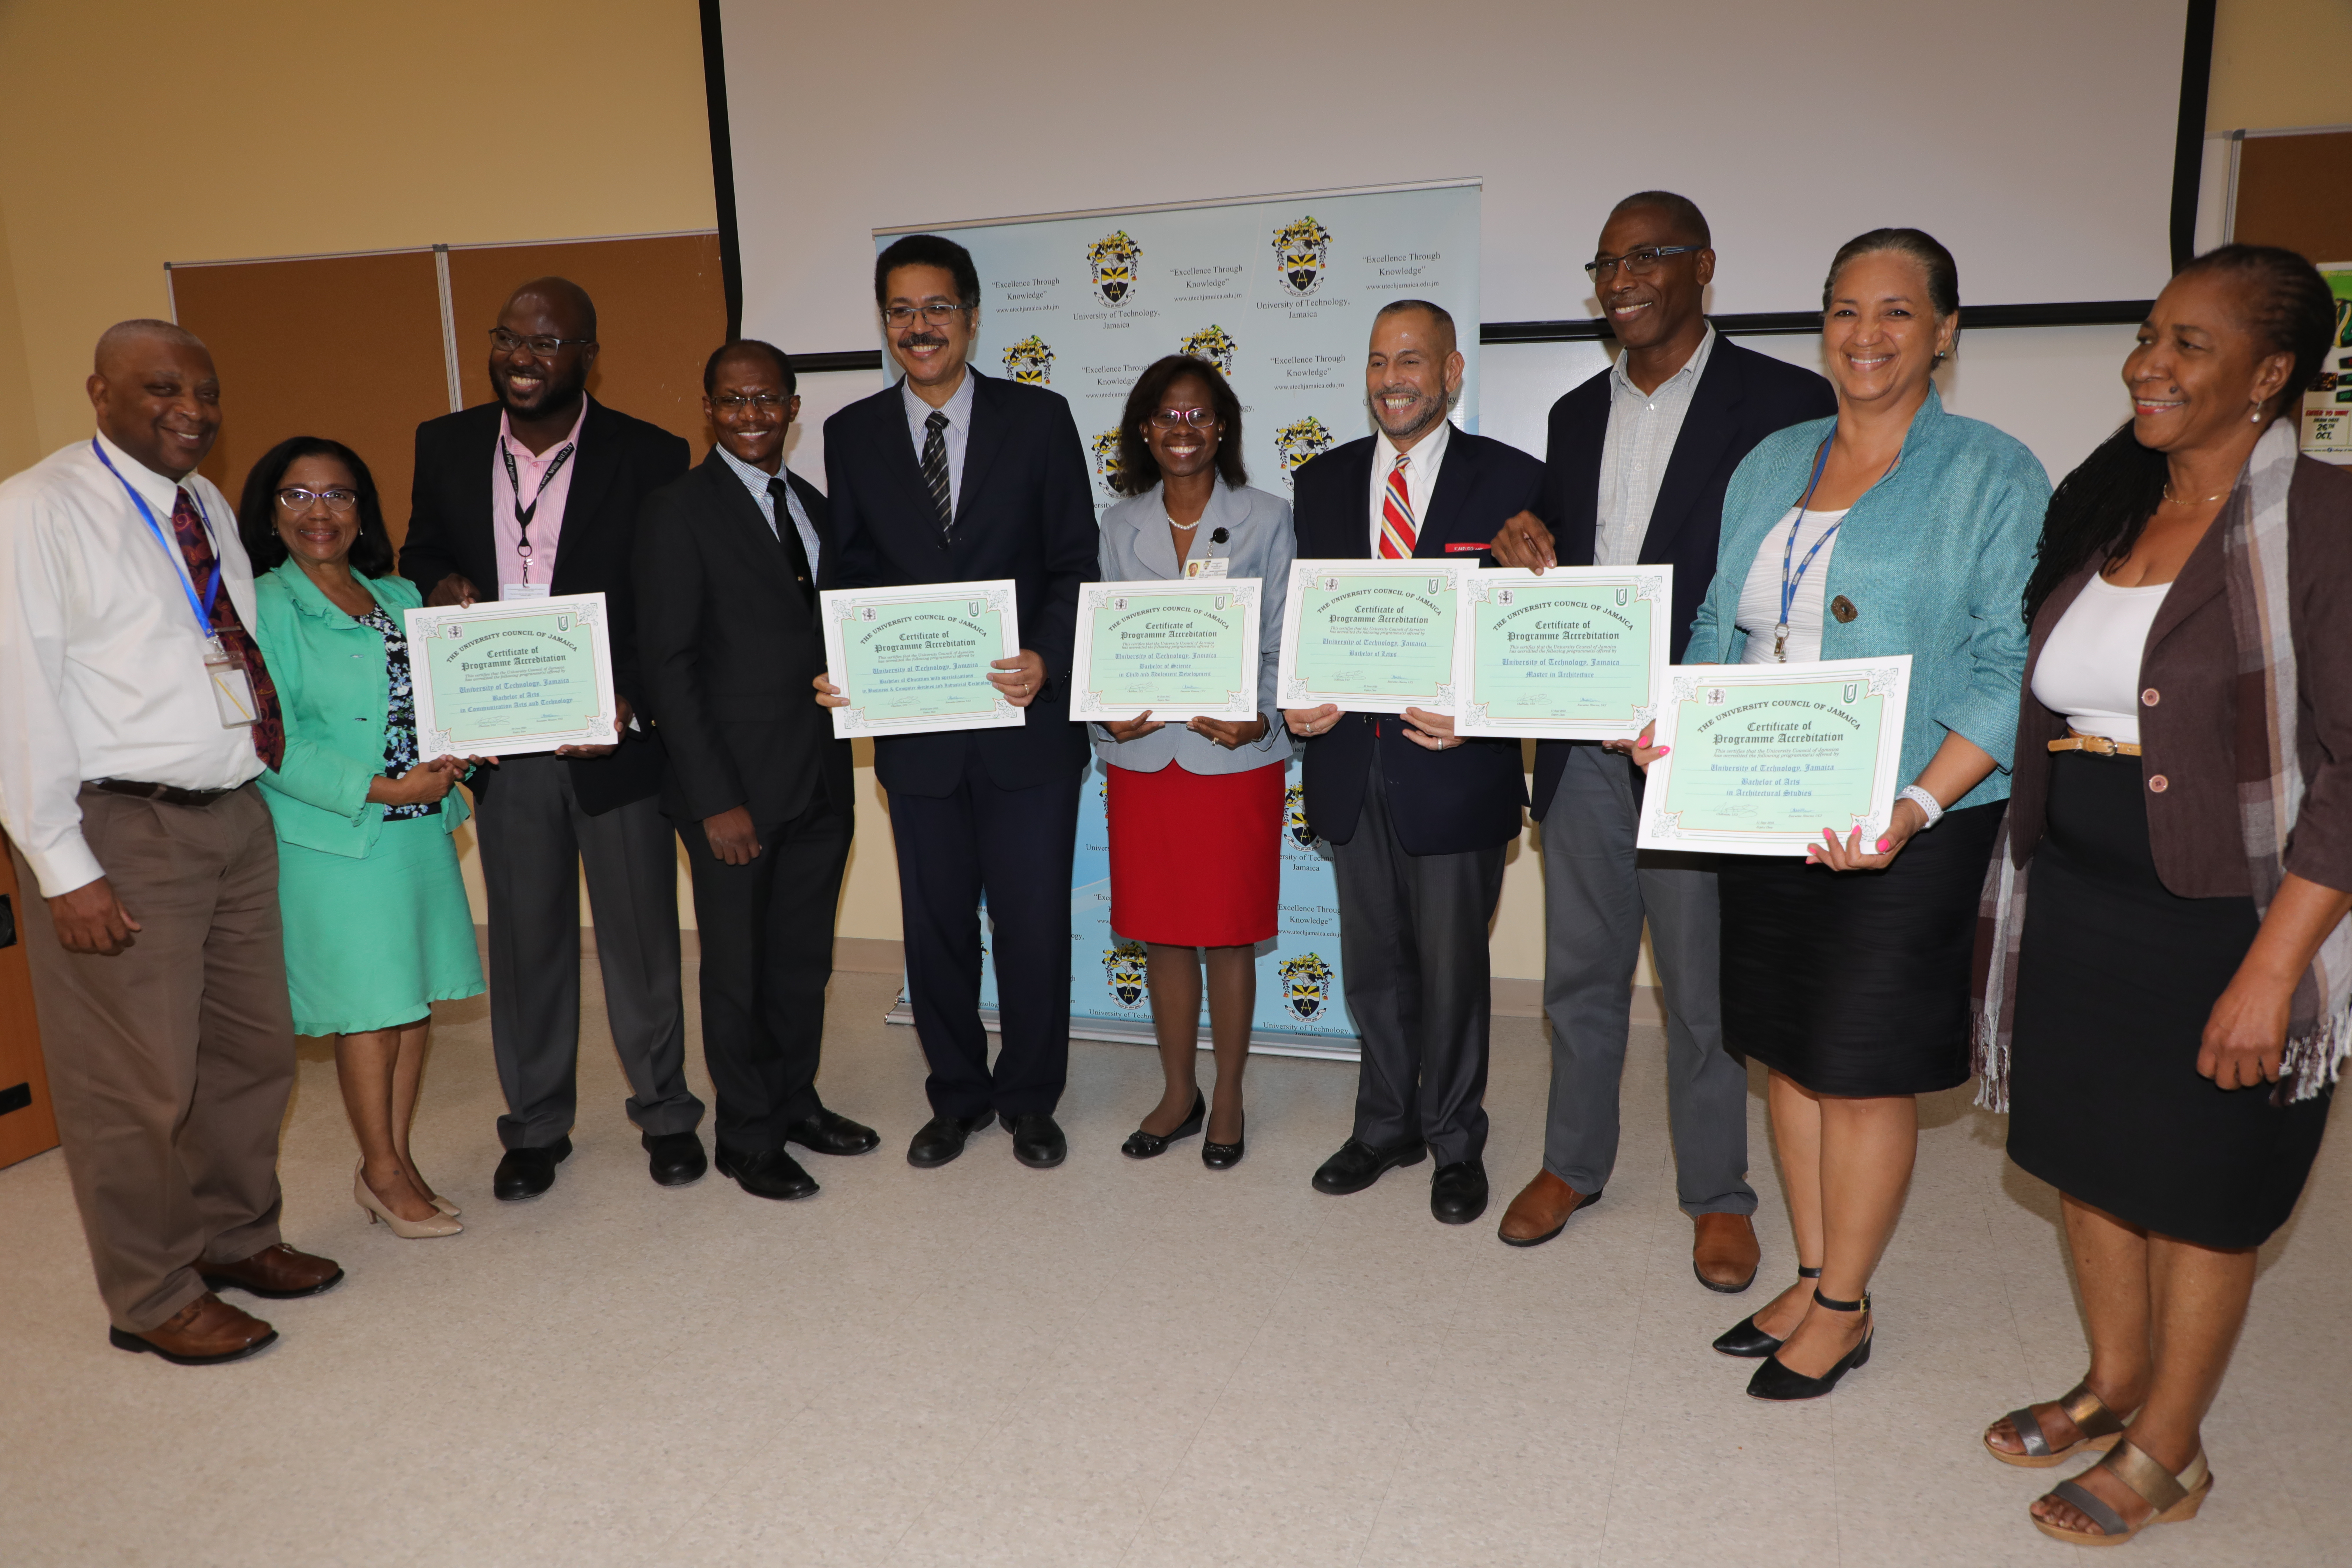 UTech, Ja. President Hands Over UCJ Certificates of Accreditation to Faculties